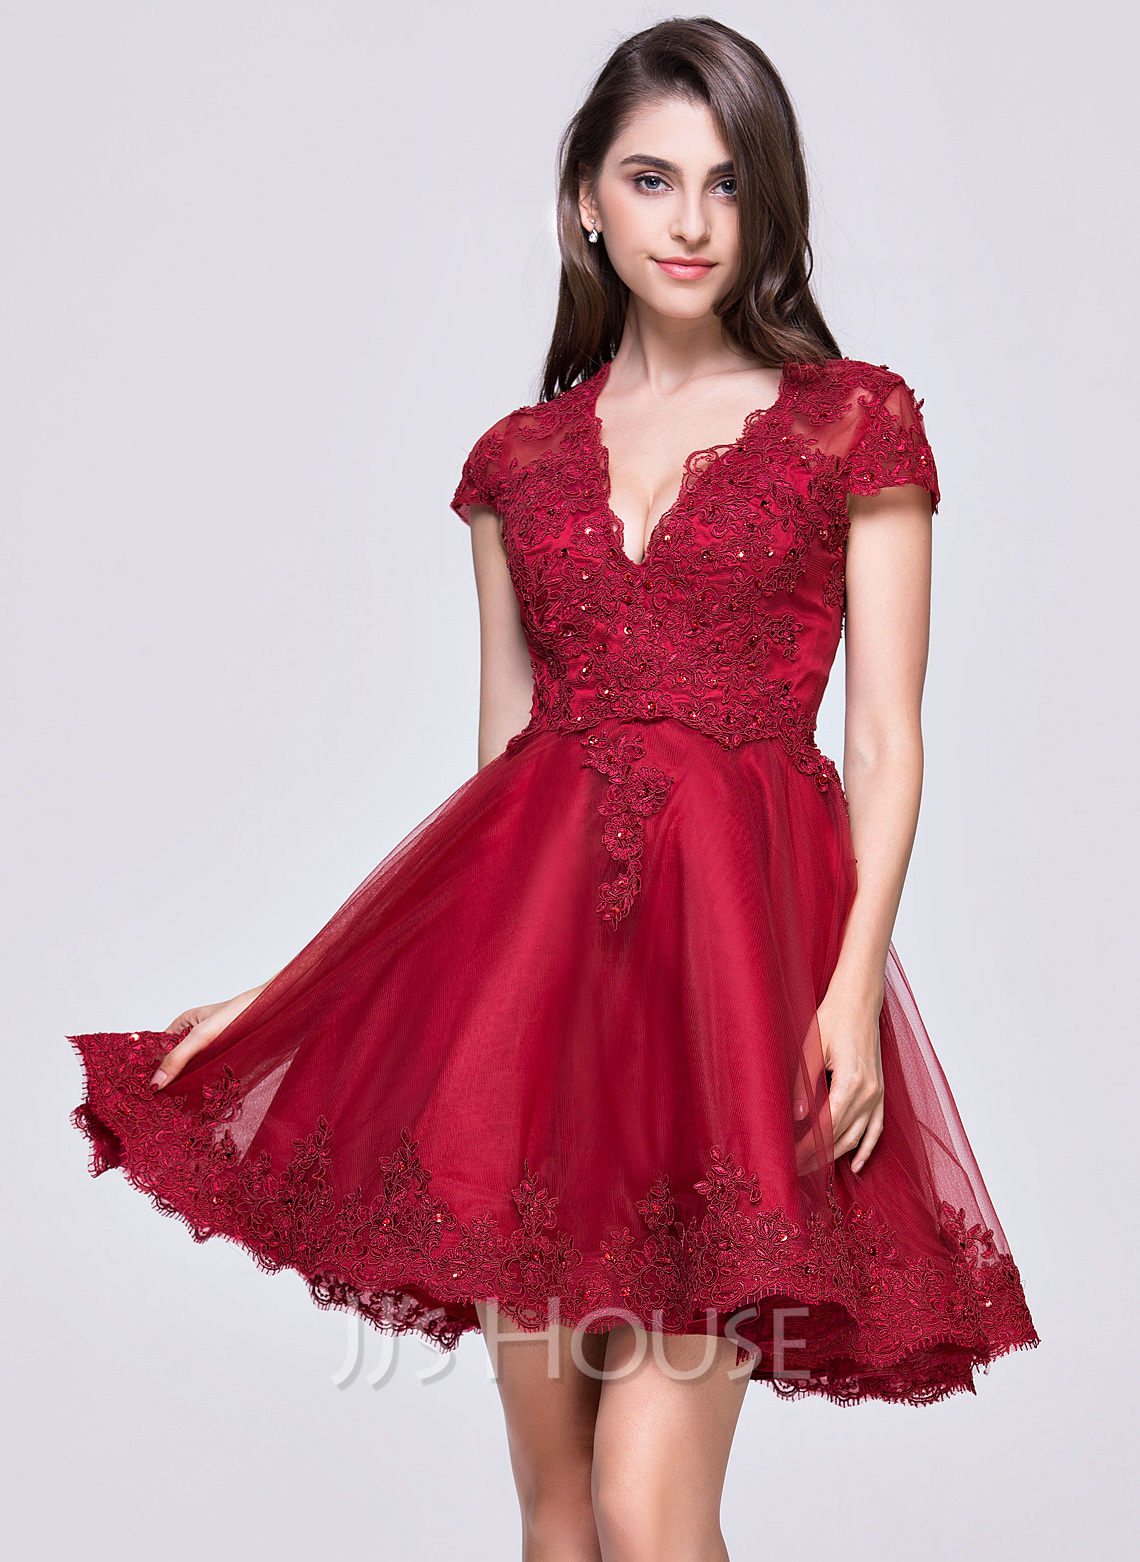 a line princess v neck short mini tulle homecoming dress with appliques lace 022068817. Black Bedroom Furniture Sets. Home Design Ideas